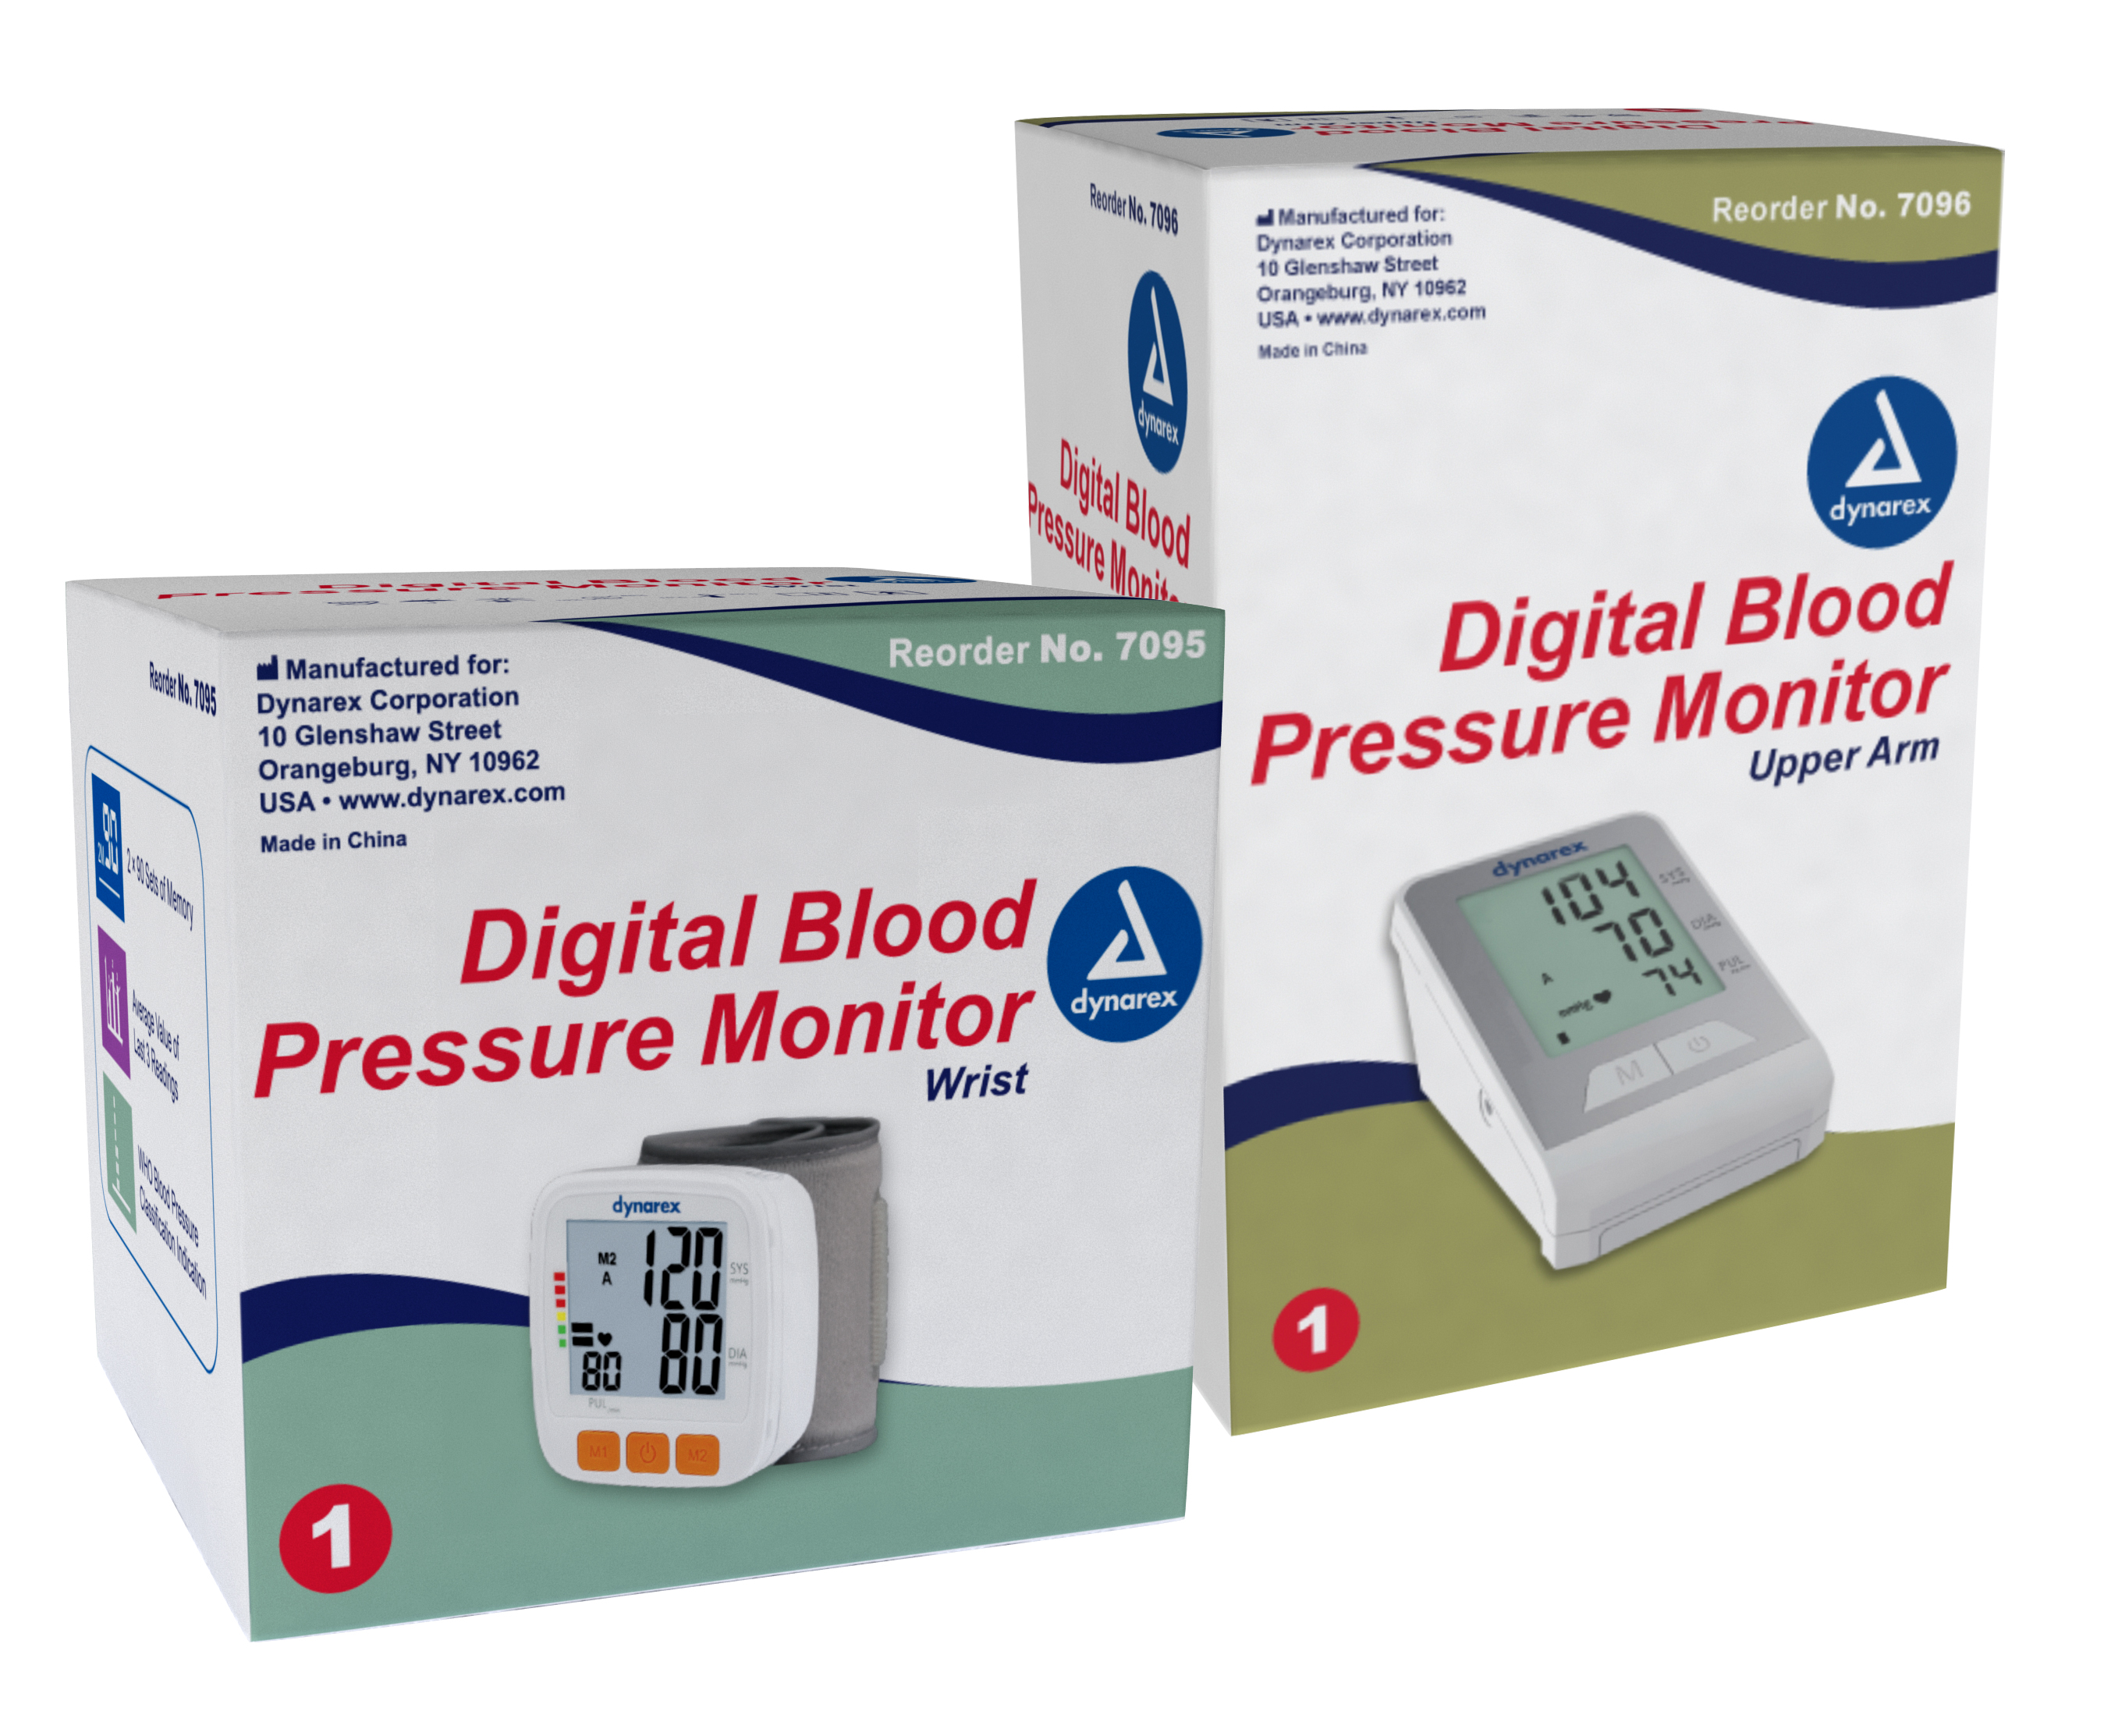 #7095 Dynarex Digital Blood Pressure Monitors for Wrist